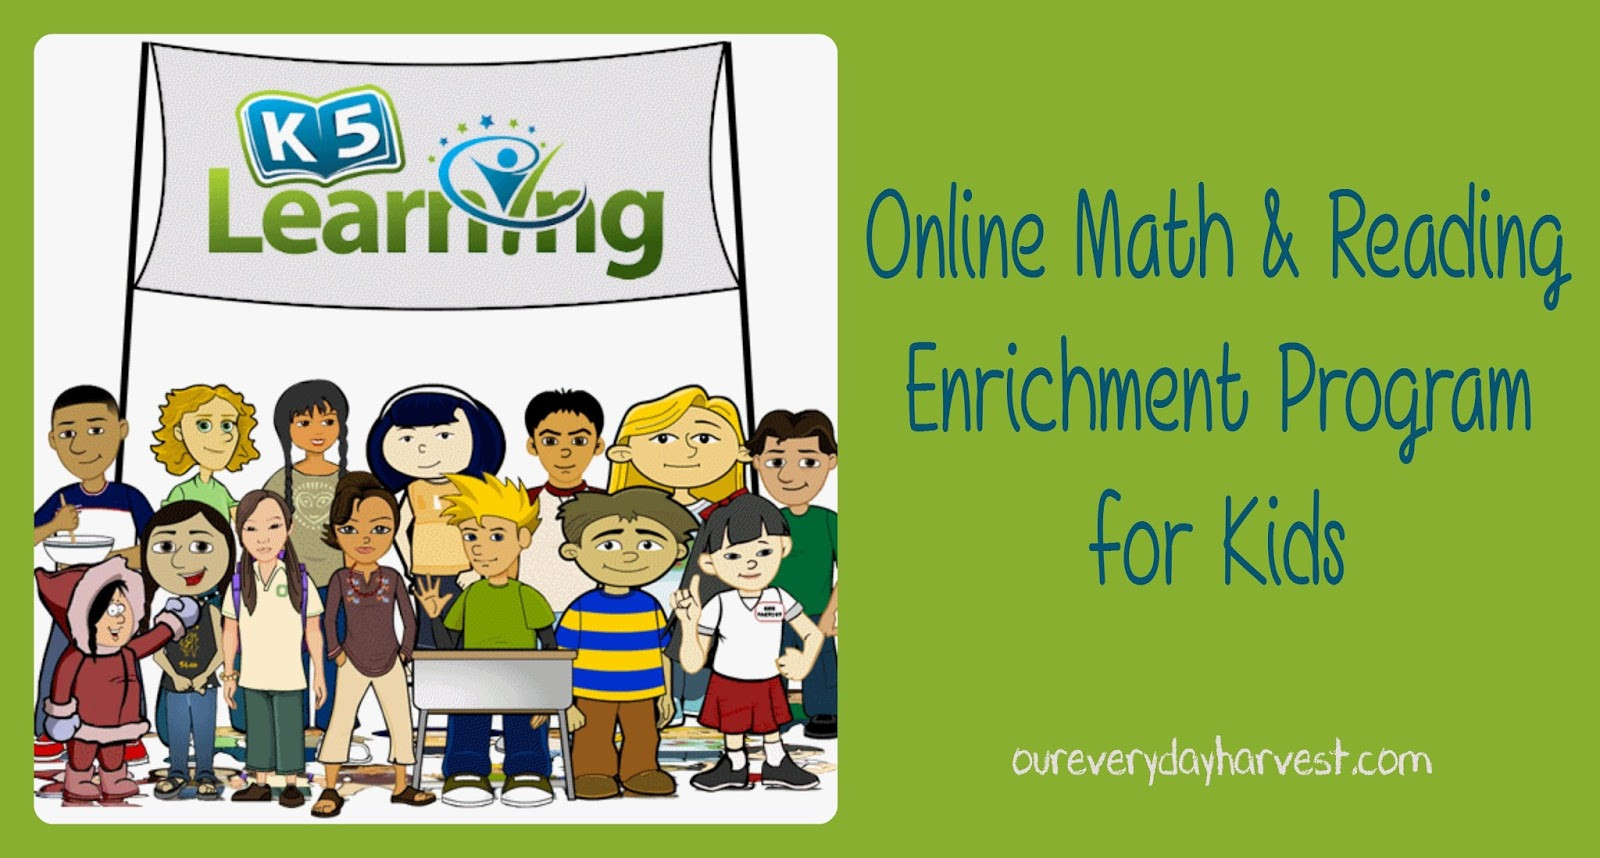 K5 Learning Math Grade 4 Line Math and Reading Enrichment Program for Kids K5